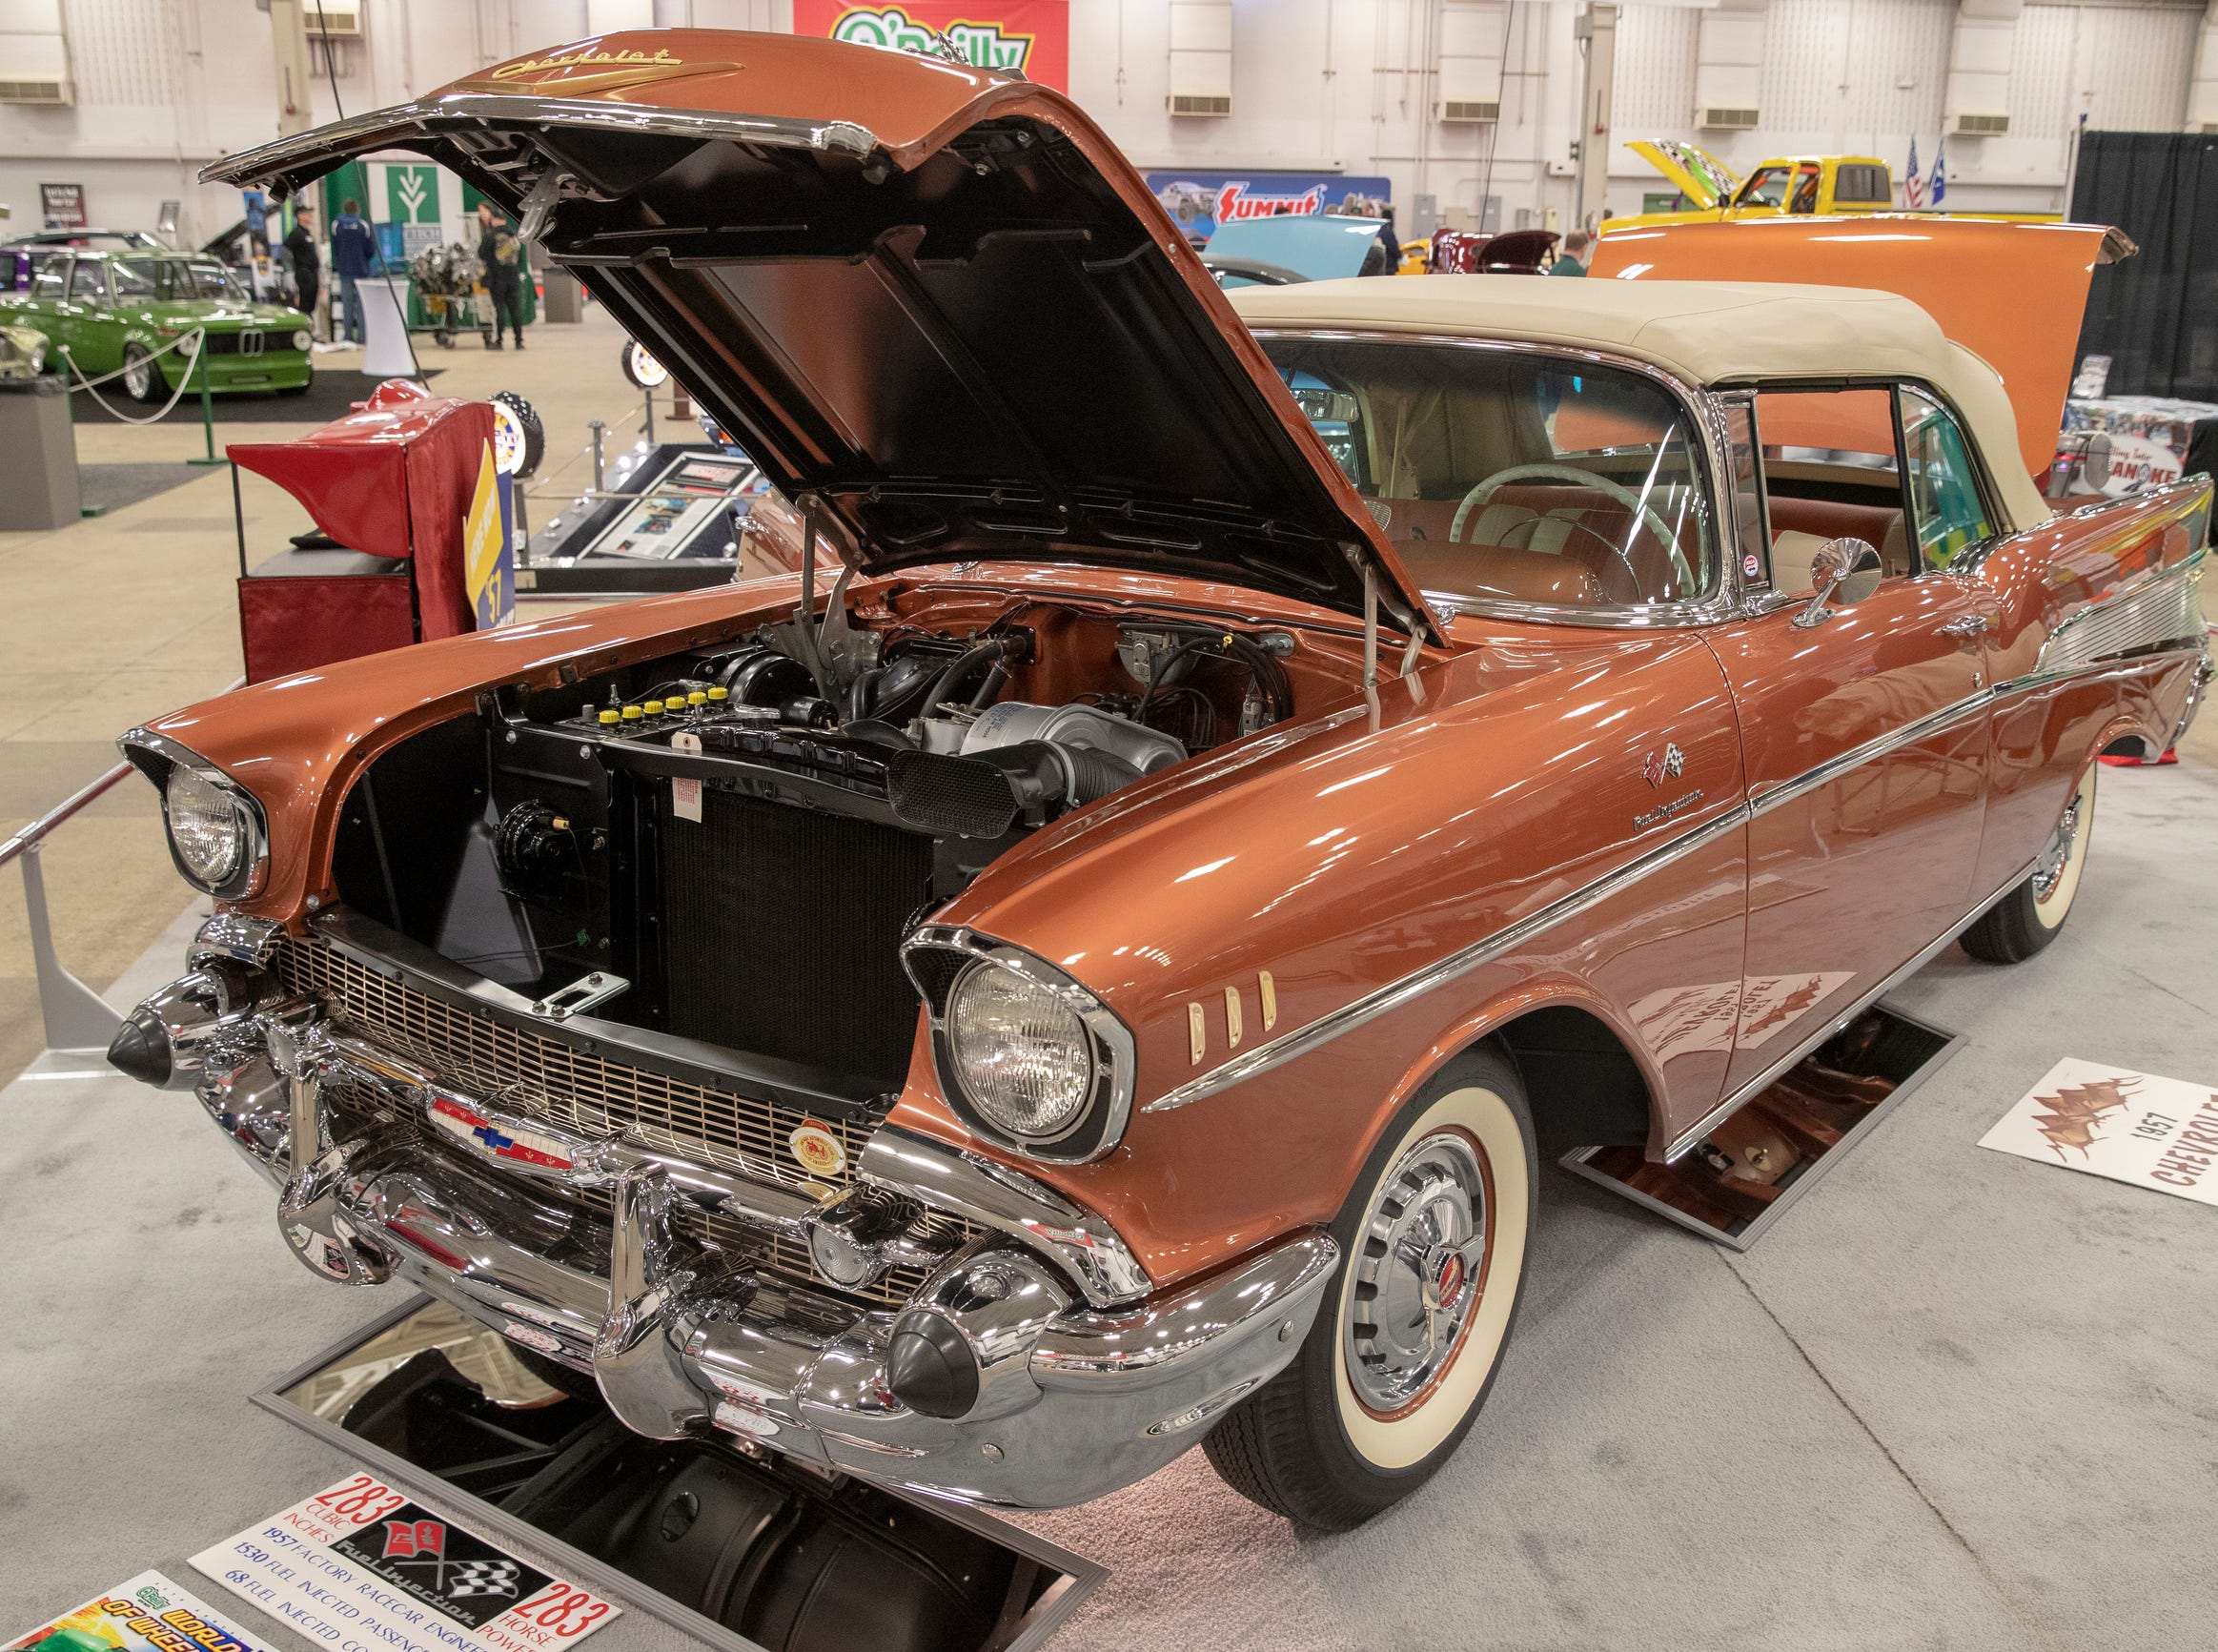 A 1957 Chevrolet, at World of Wheels at the Indiana State Fairgrounds, Indianapolis, Friday, Feb. 8, 2019. The event runs through the weekend and features four big rooms of stock and heavily customized cars.